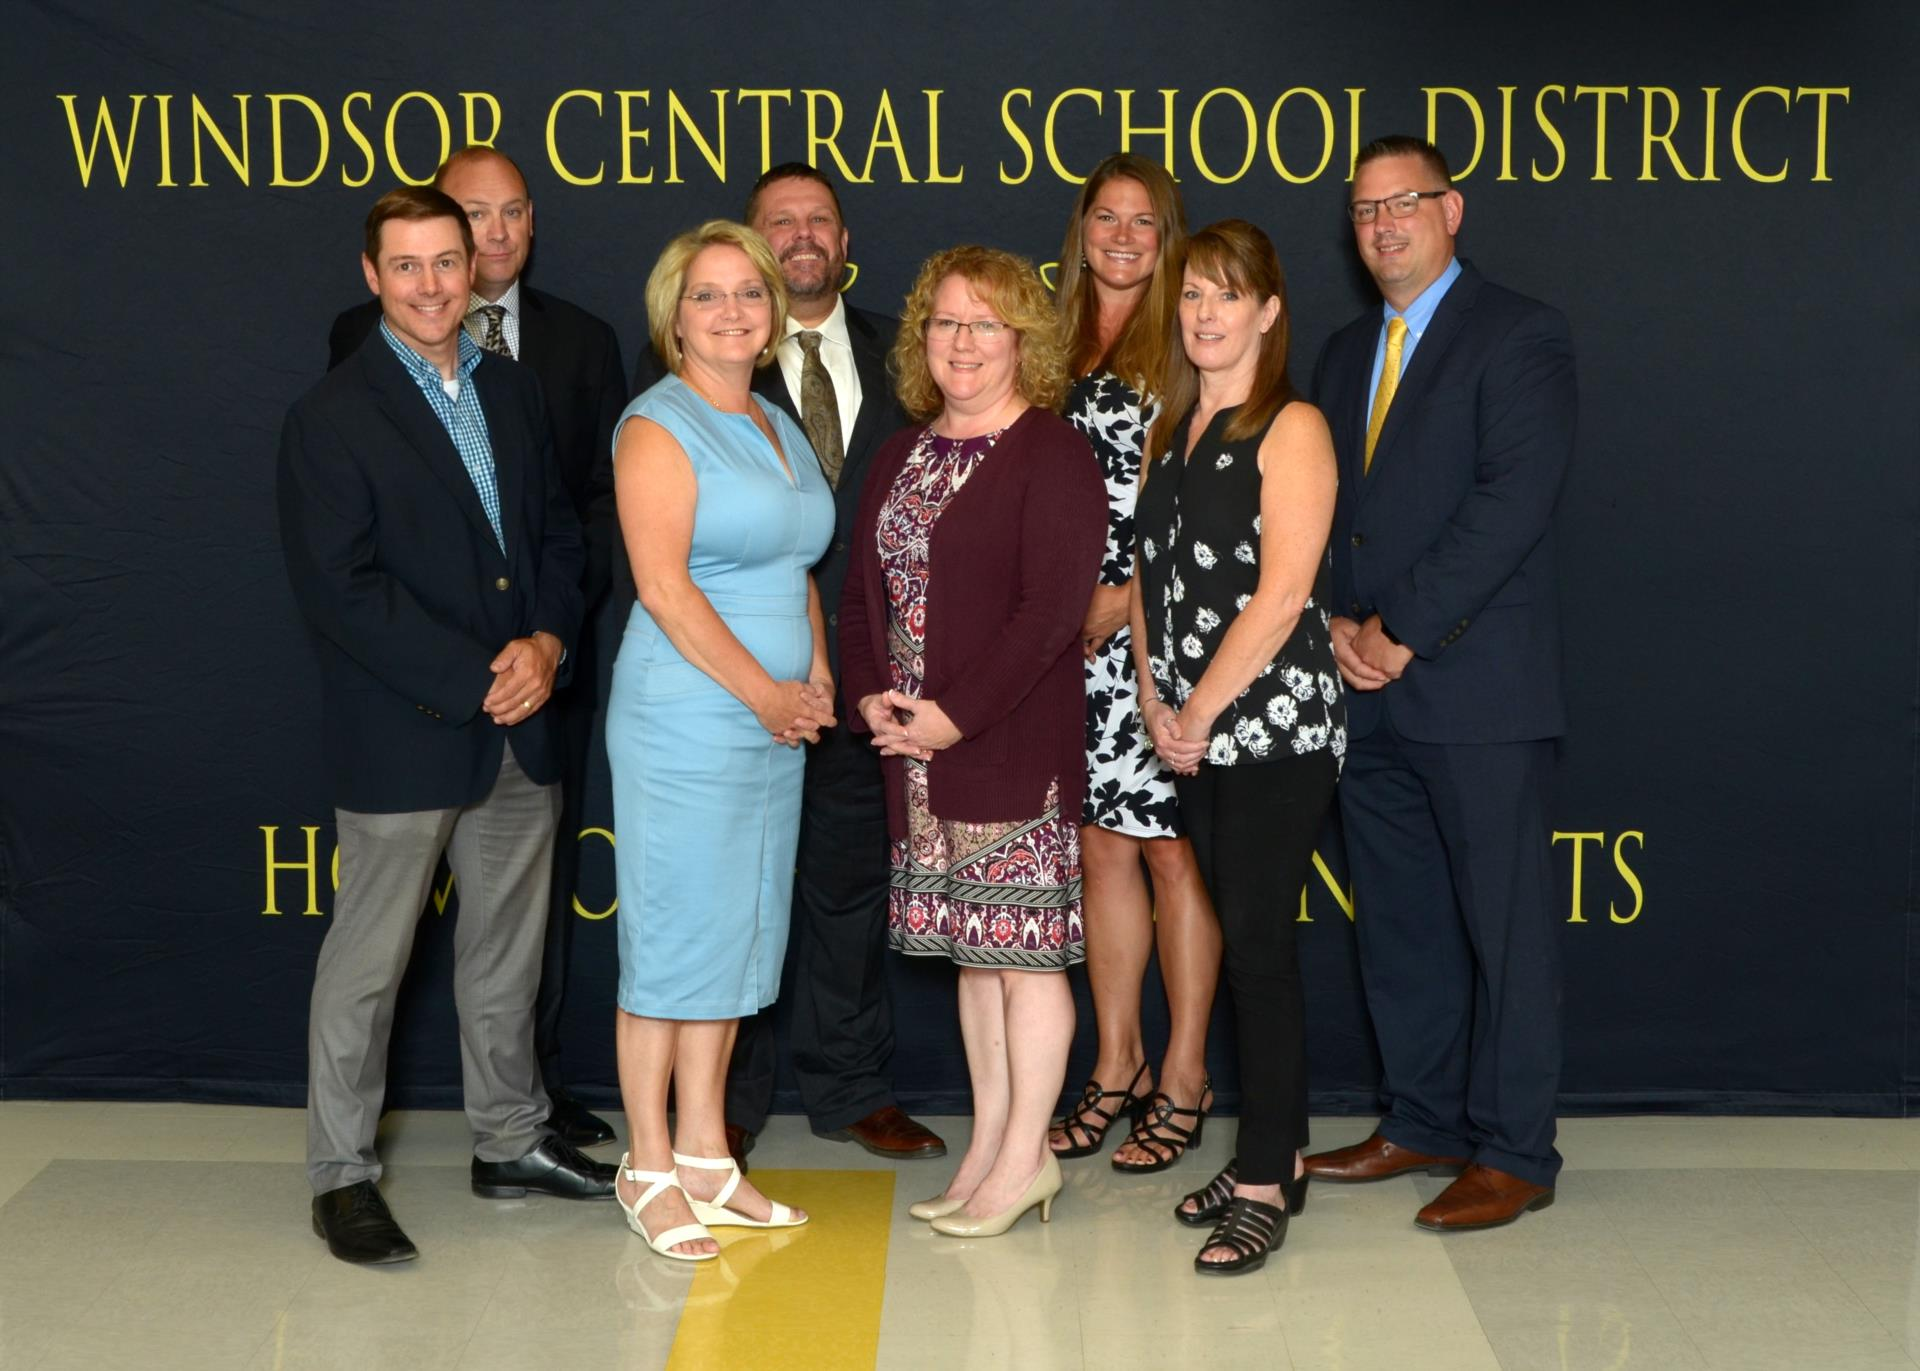 Eight adults standing in front of a Windsor Central School District Sign